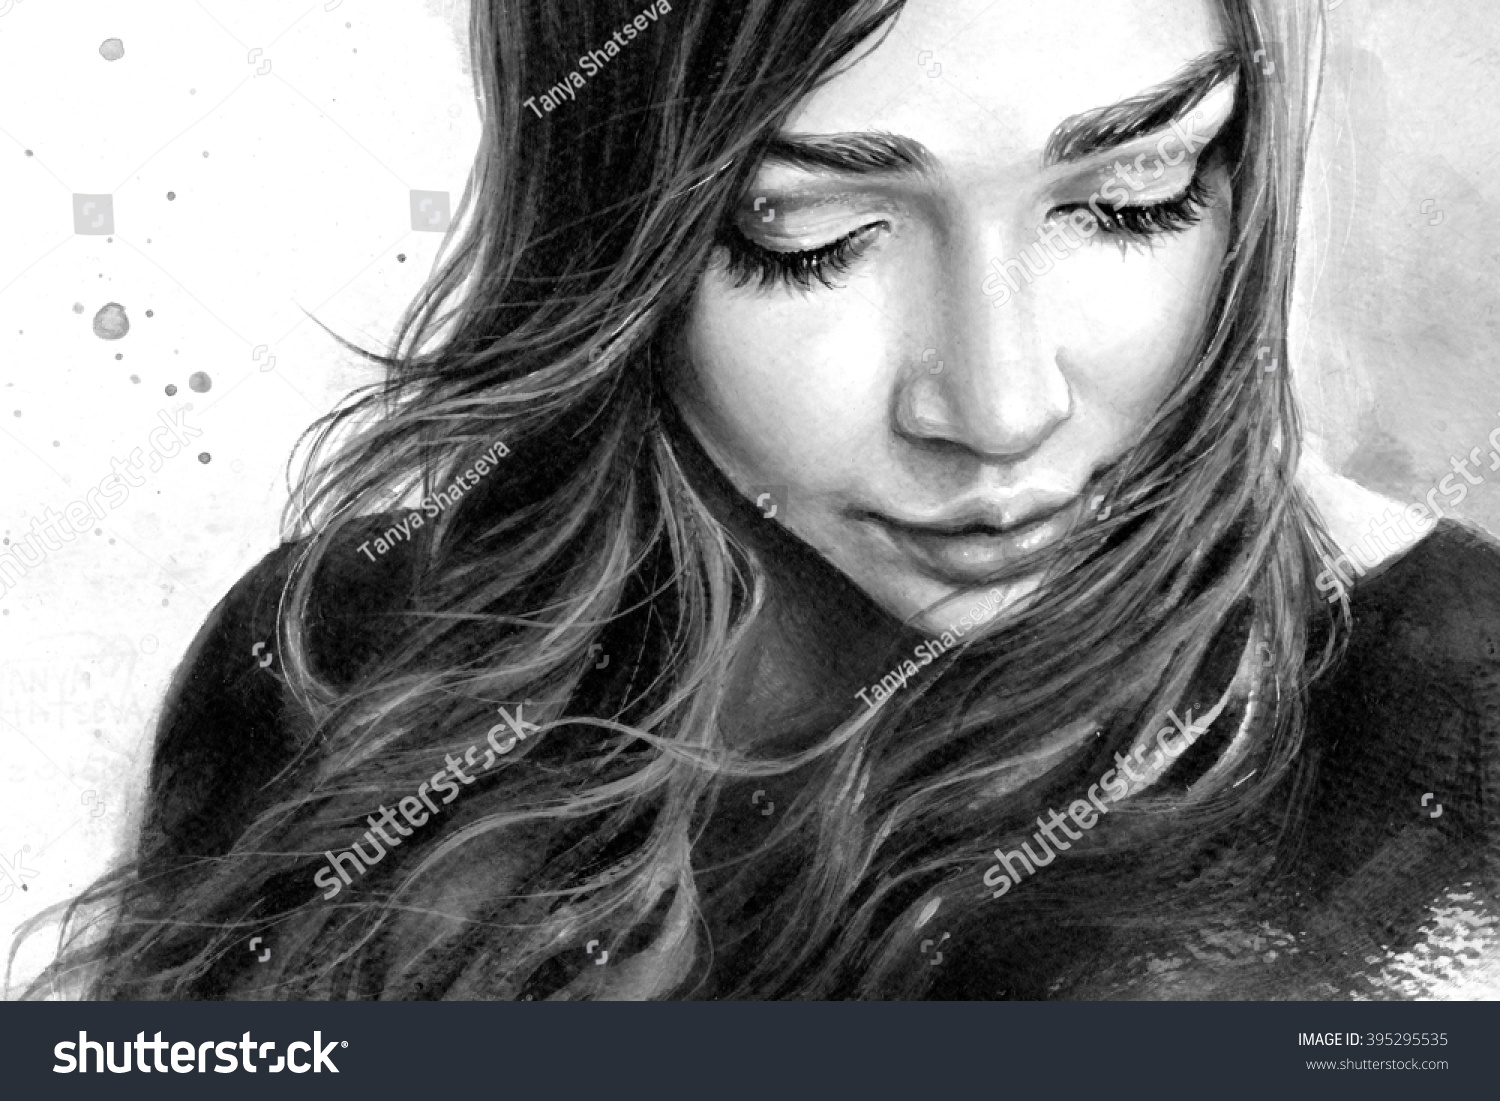 Black and white portrait of a young beautiful girl with long hair looking down with a